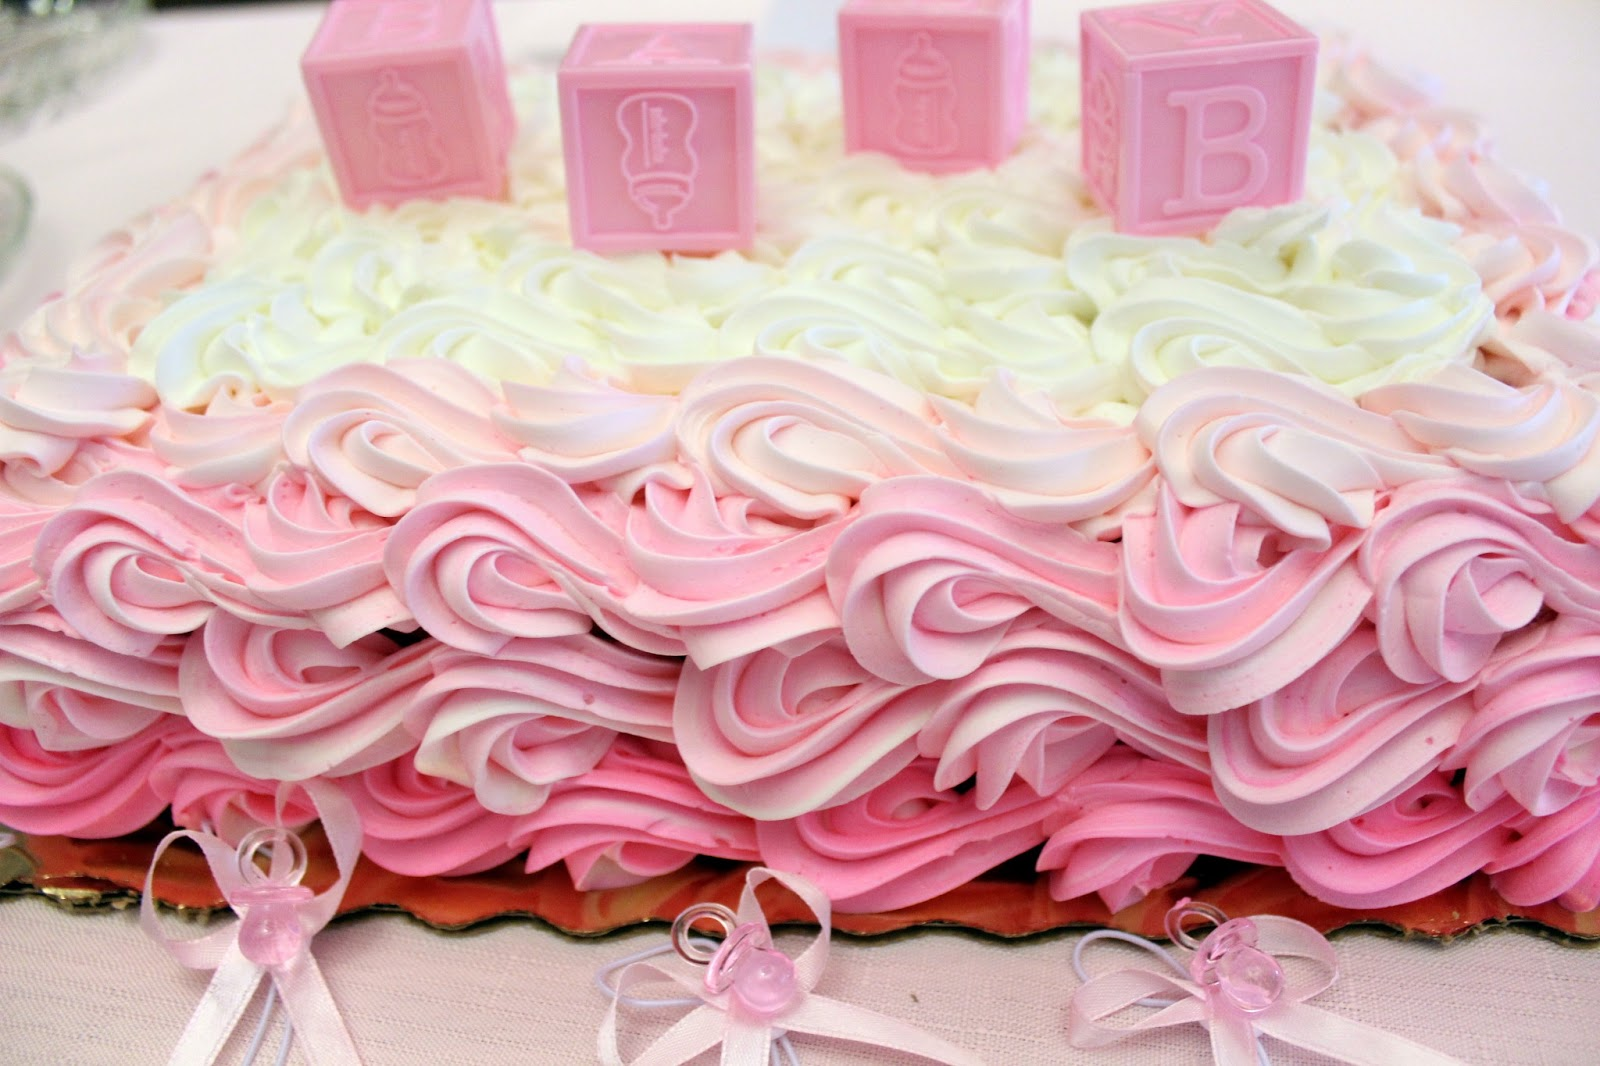 Sheet Cakes With Tutu Onesies On Them